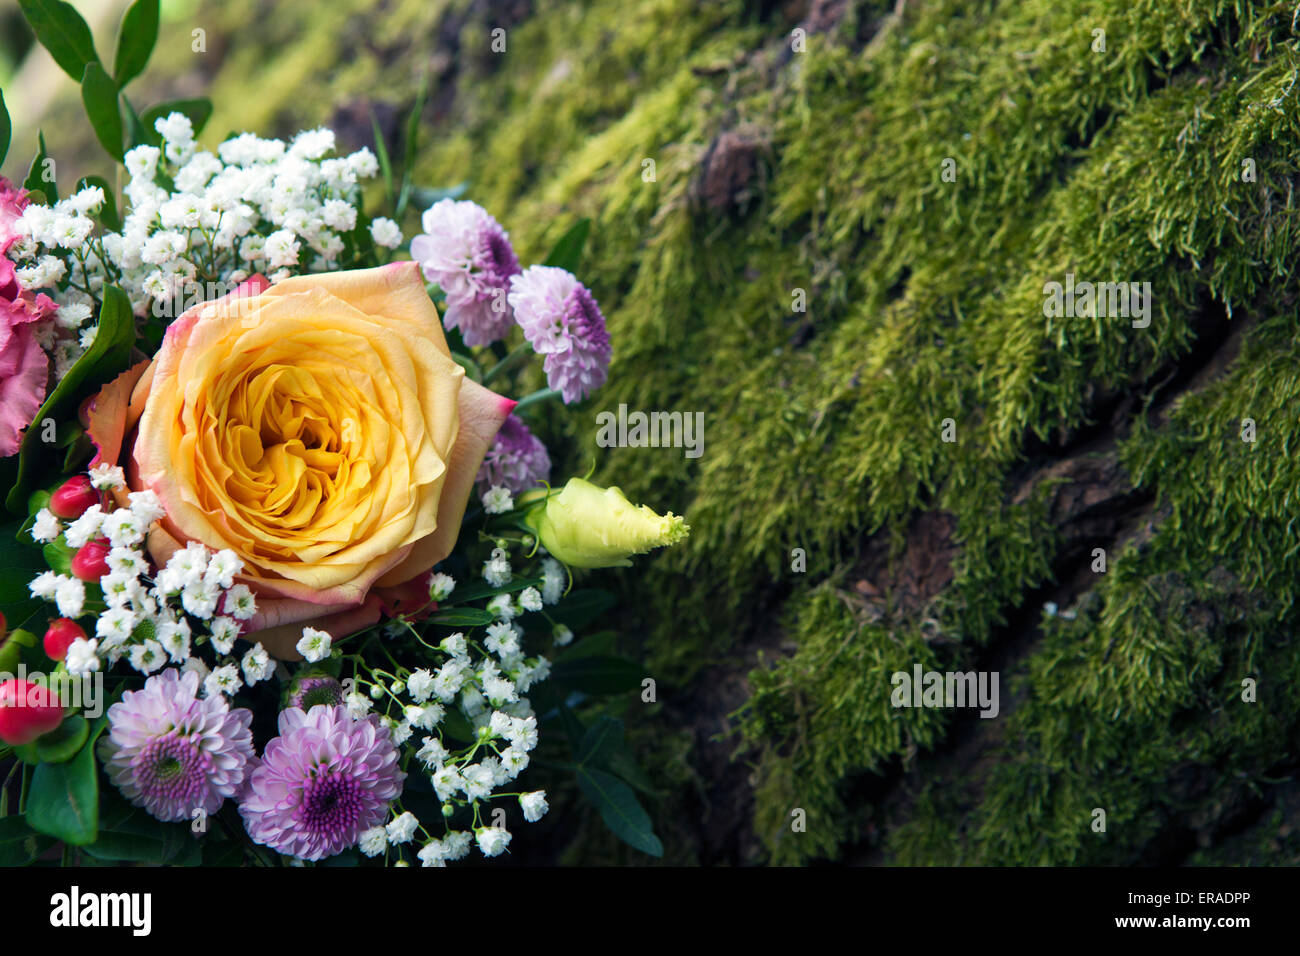 Flower Arrangement With Yellow Rose Next To Green Moss Stock Photo